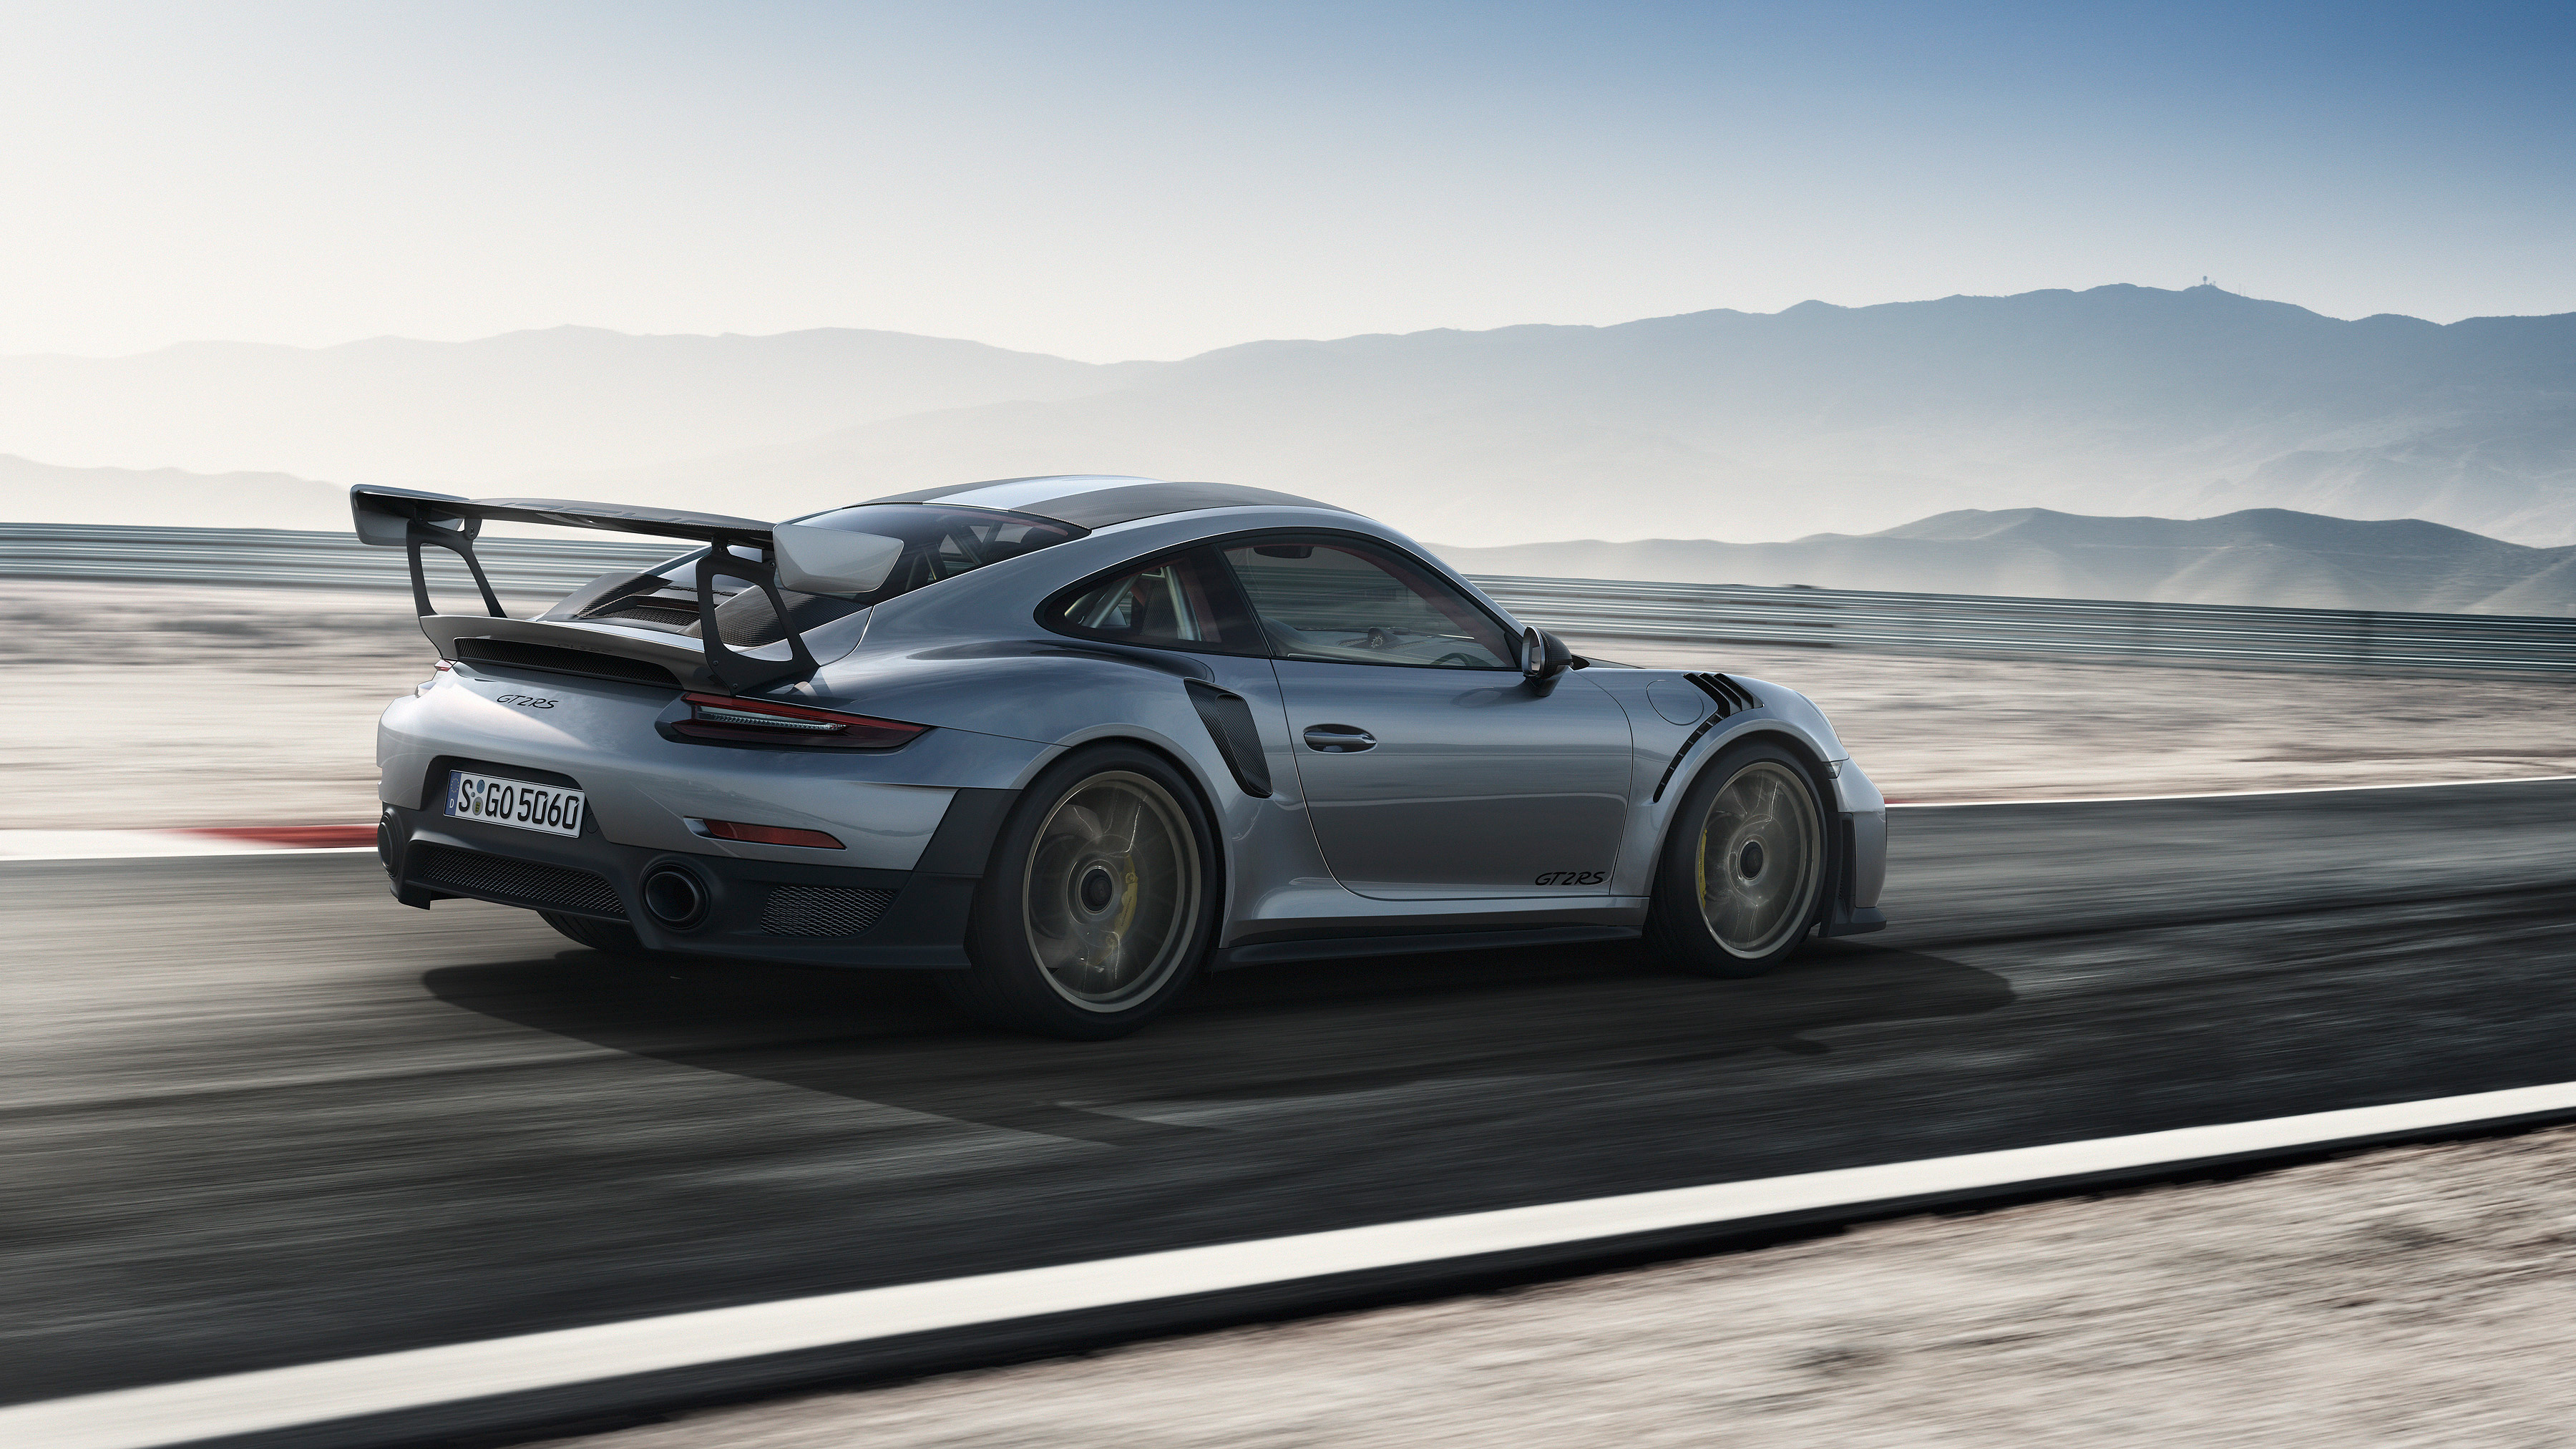 Porsche 911 GT2 RS 4K UHD Wallpaper HD Wallpapers Photos 3600x2025